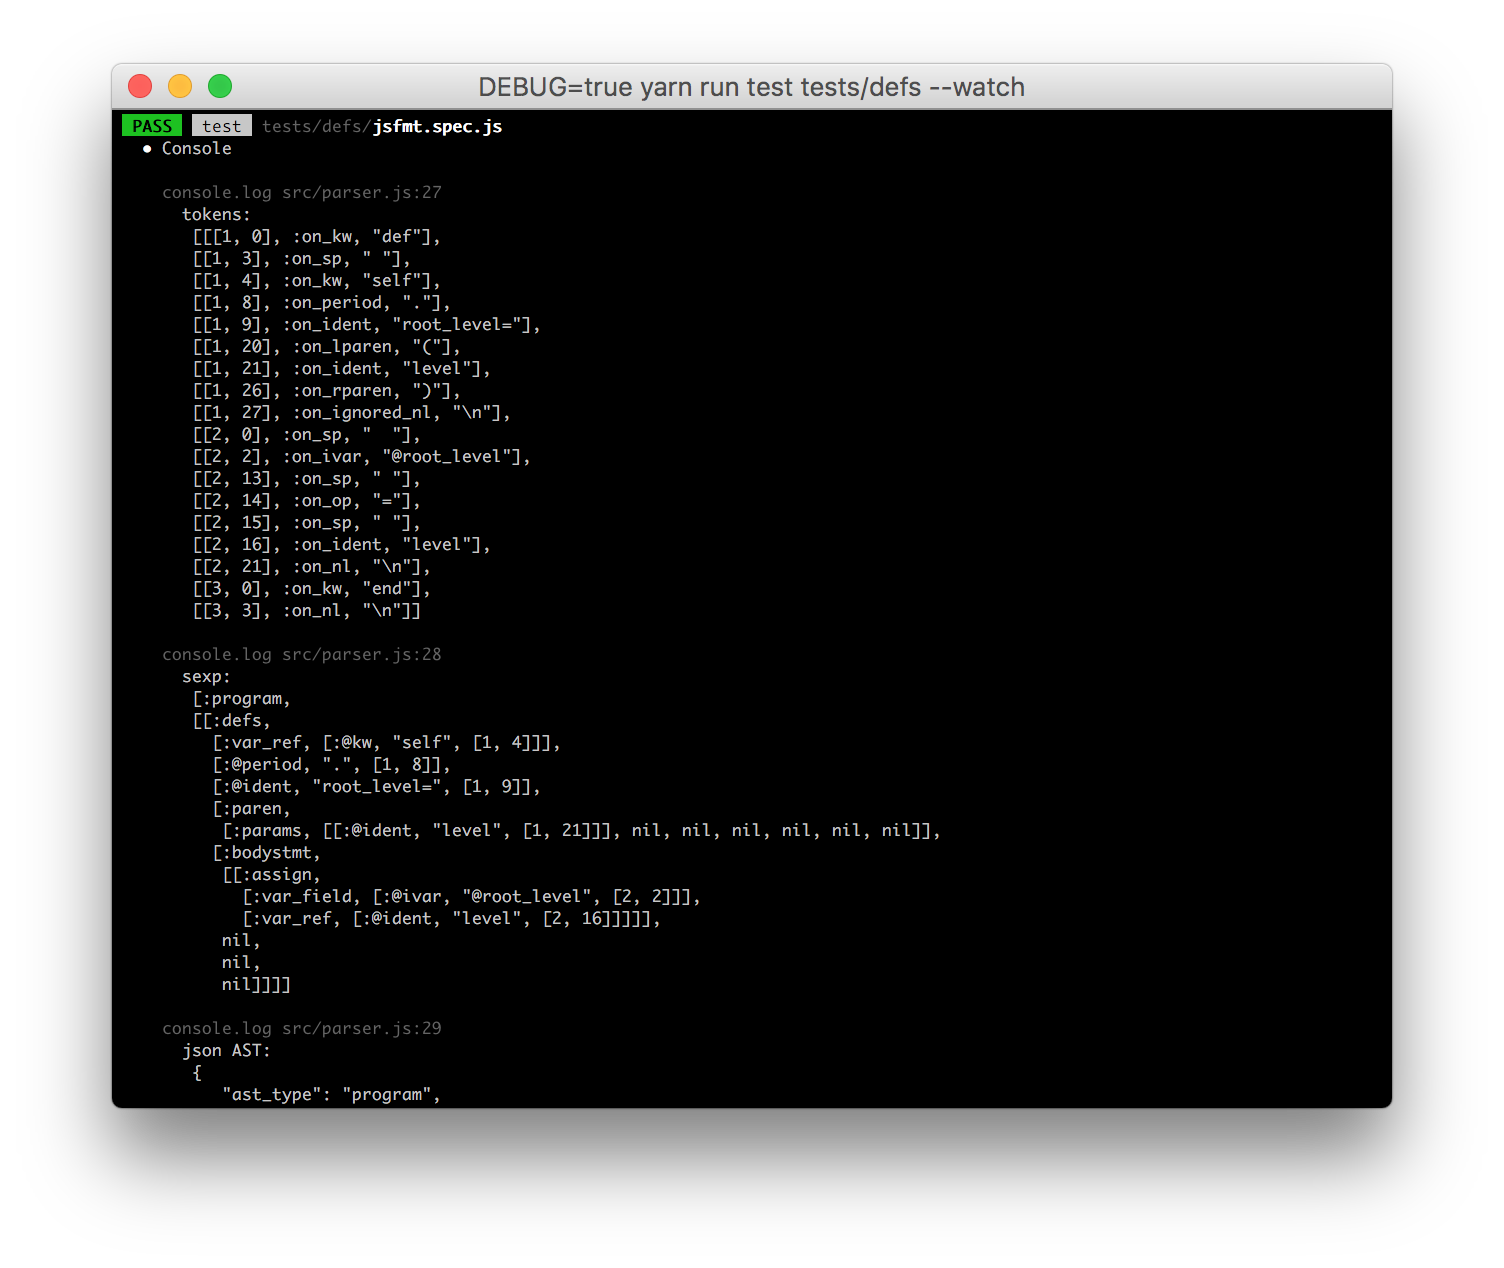 Debug mode enabled, showing the parsed Ruby tokens and more